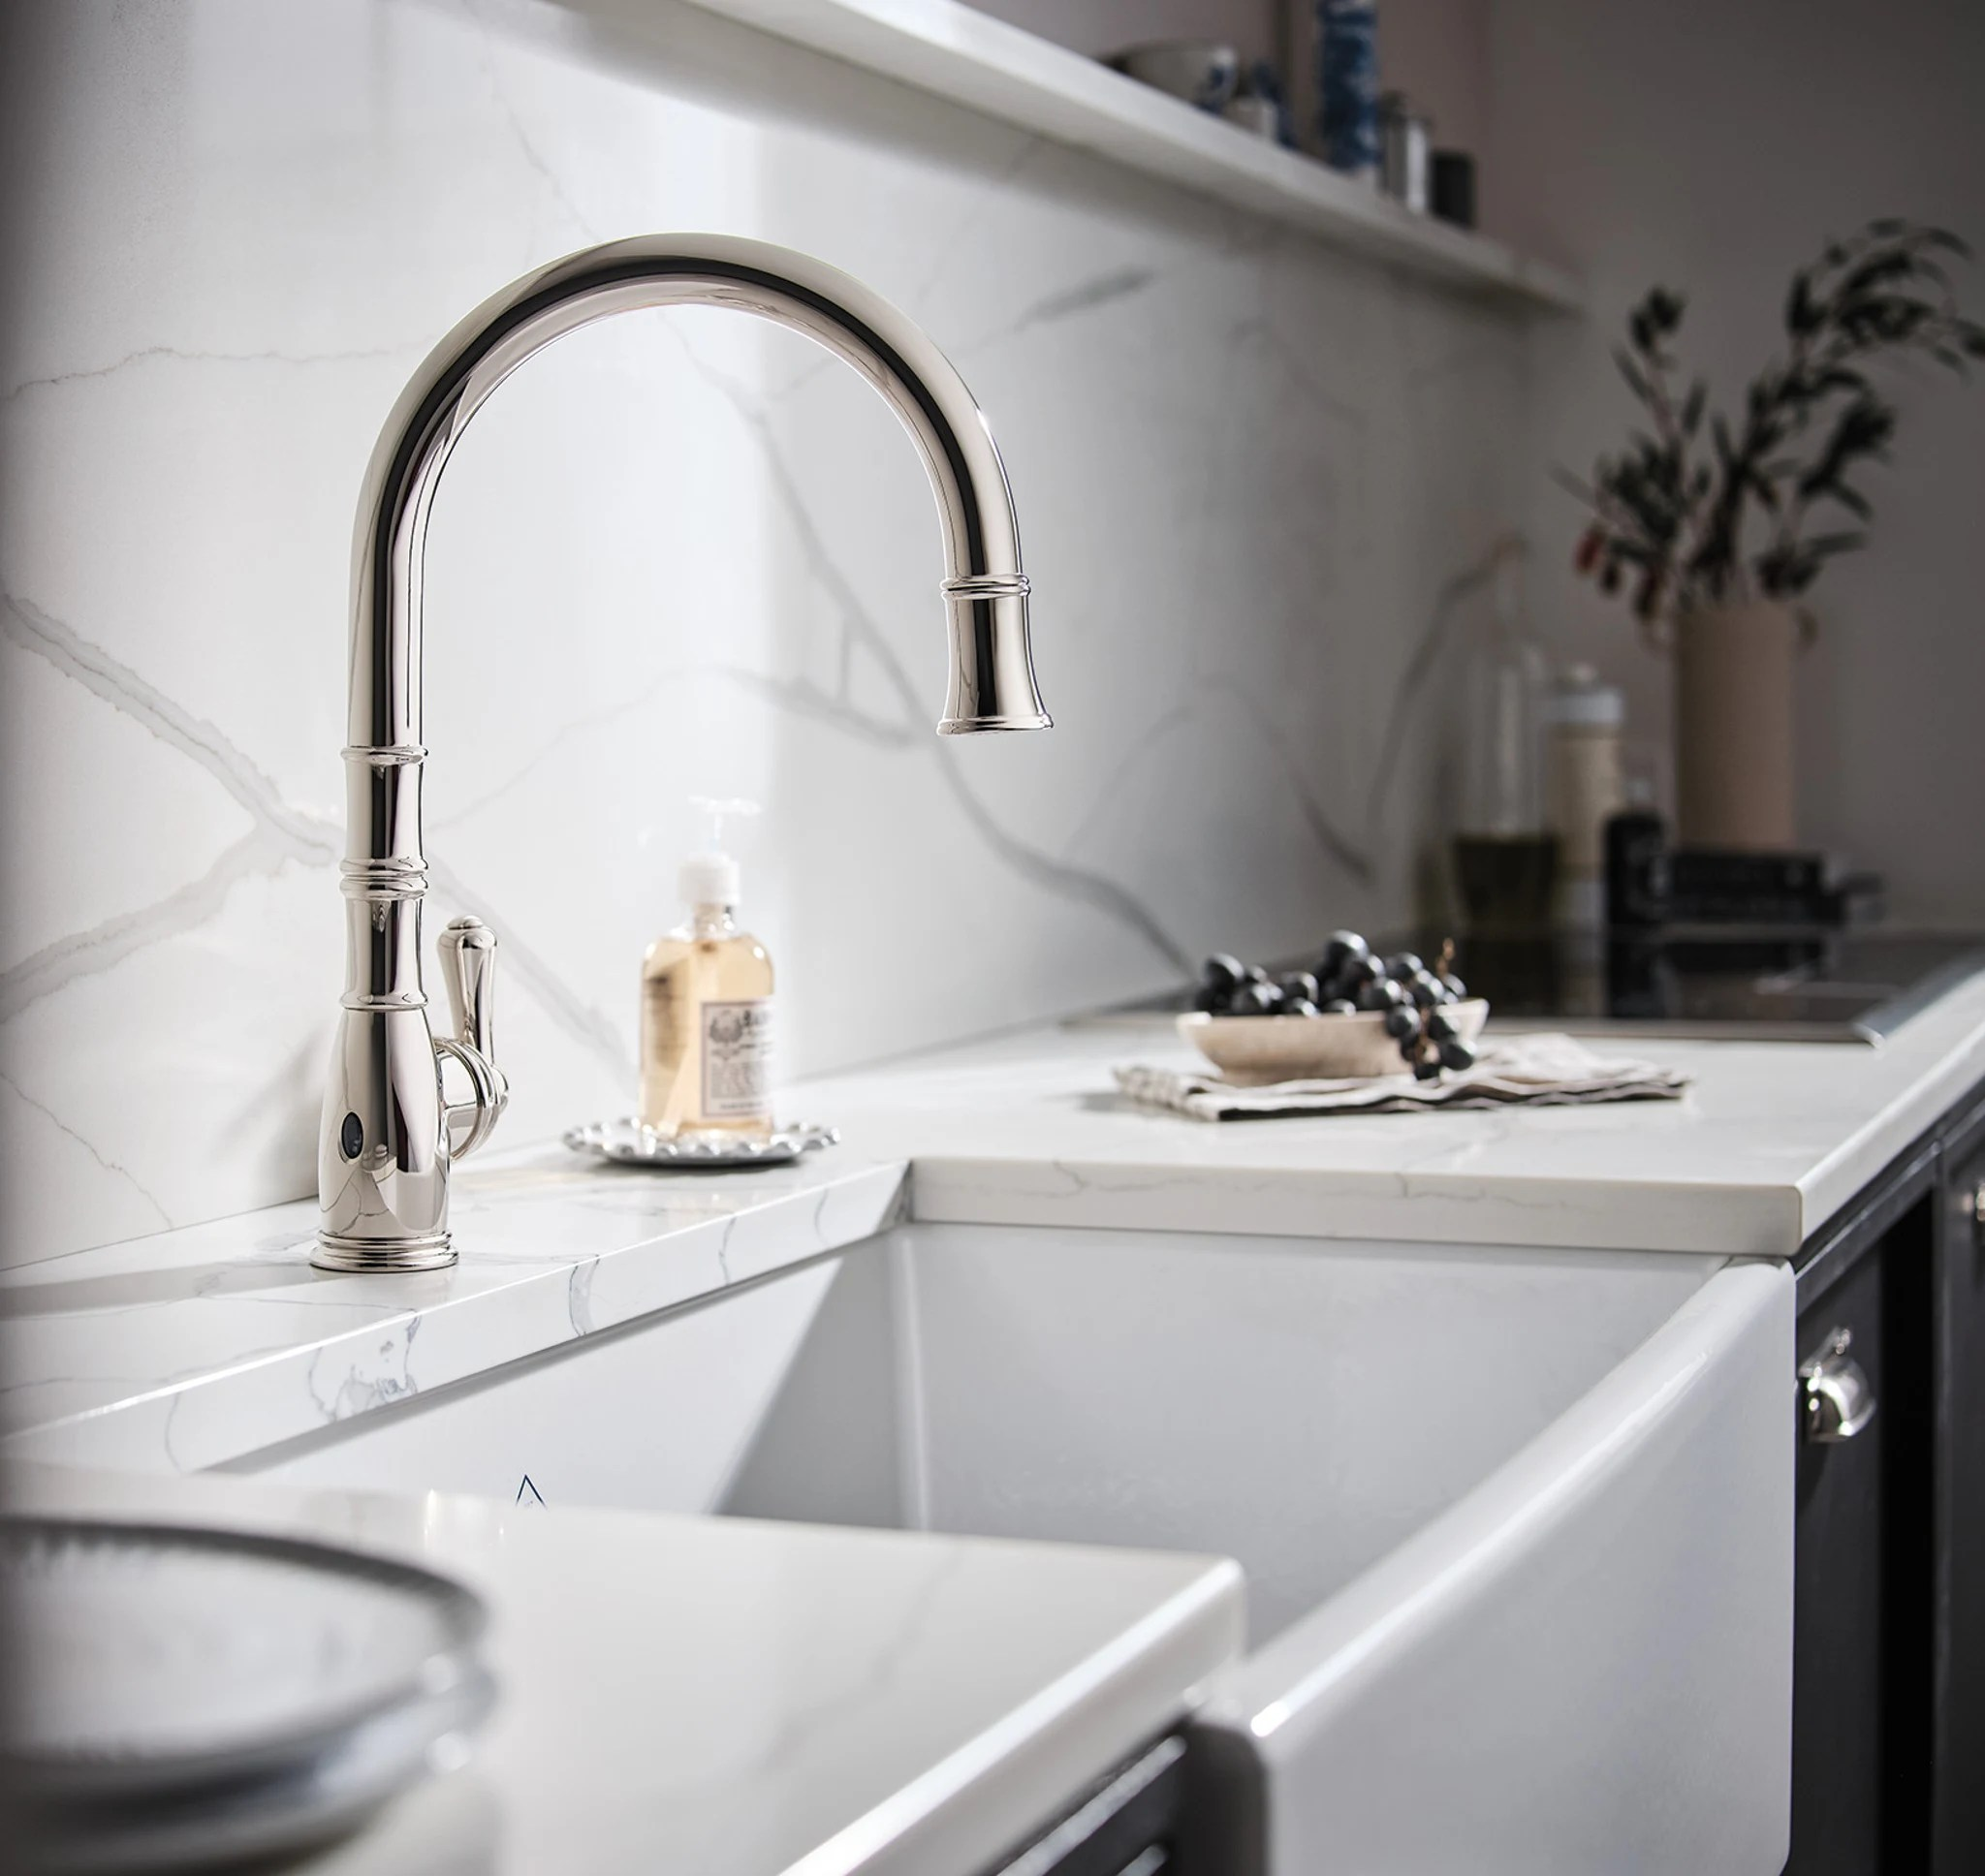 rohl u 4734 perrin rowe georgian era pull down touchless kitchen faucet